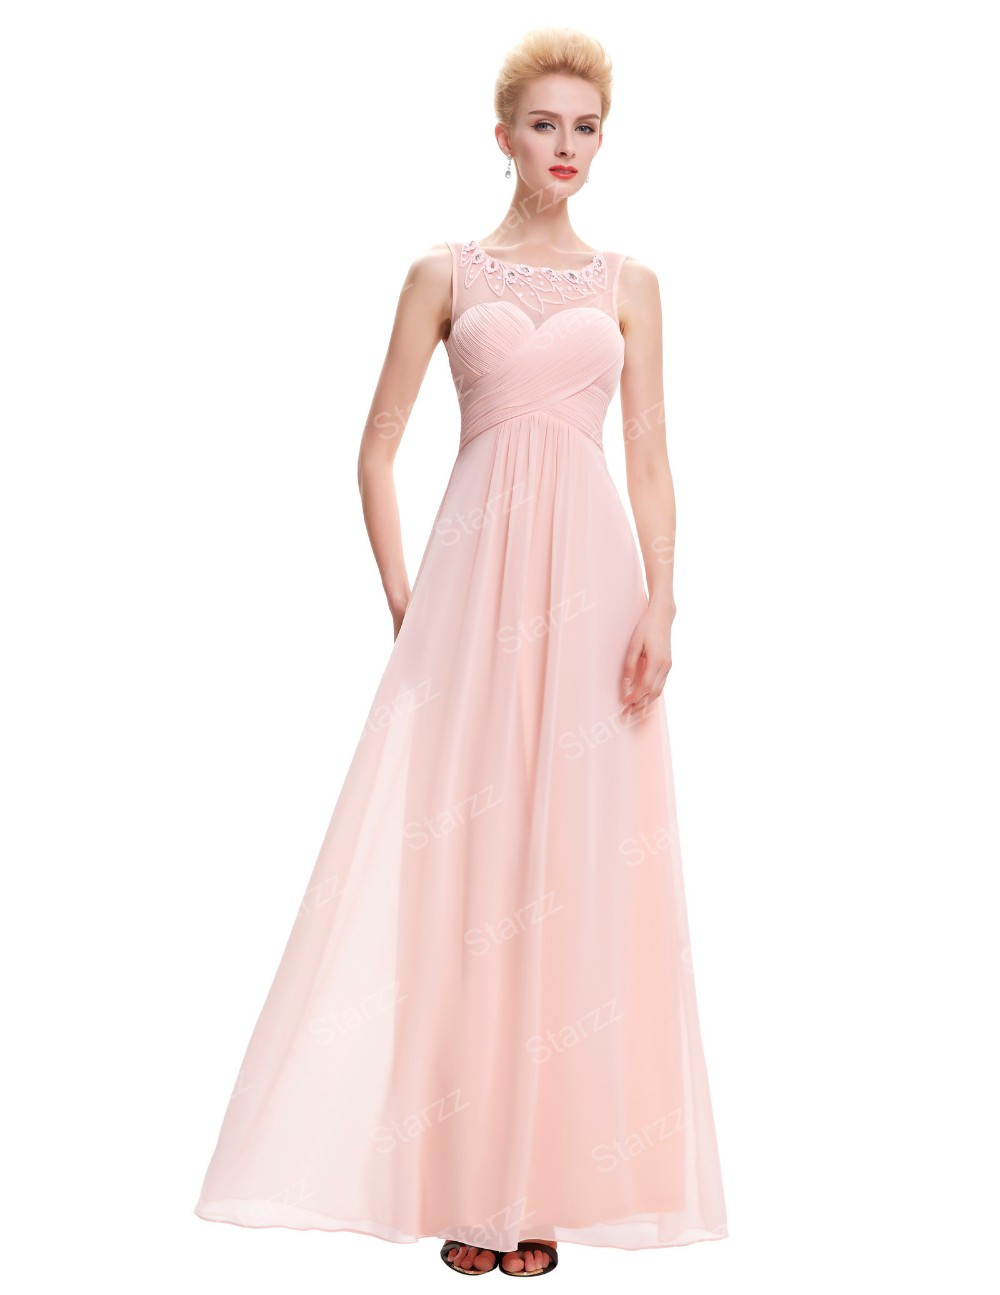 Starzz sleeveless light pink chiffon long bridesmaid dress starzz sleeveless light pink chiffon long bridesmaid dress st000060 3 ombrellifo Images